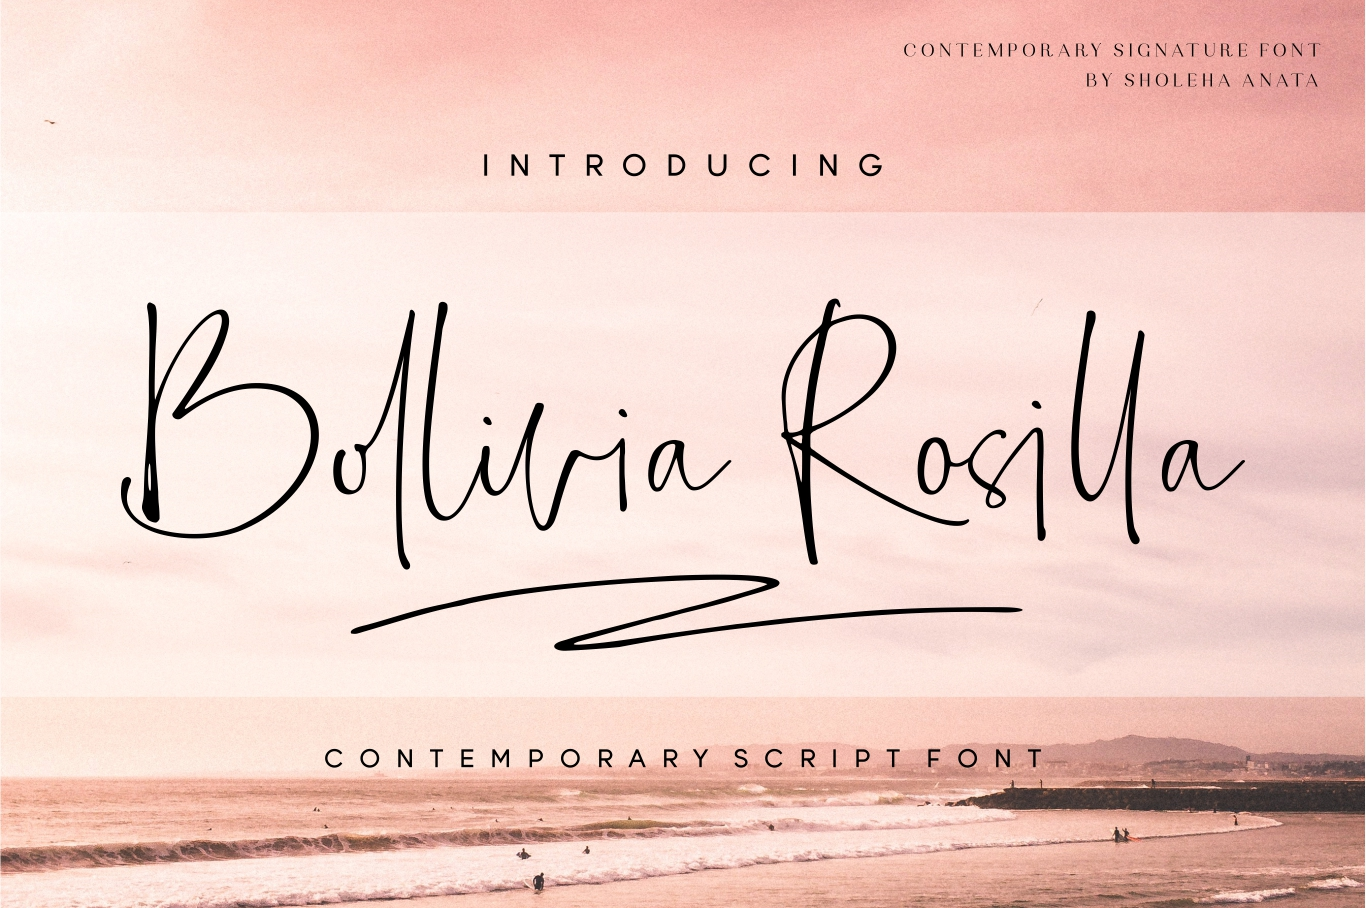 Download Free Bollivia Rosilla Font By Anata Sholeha Creative Fabrica for Cricut Explore, Silhouette and other cutting machines.